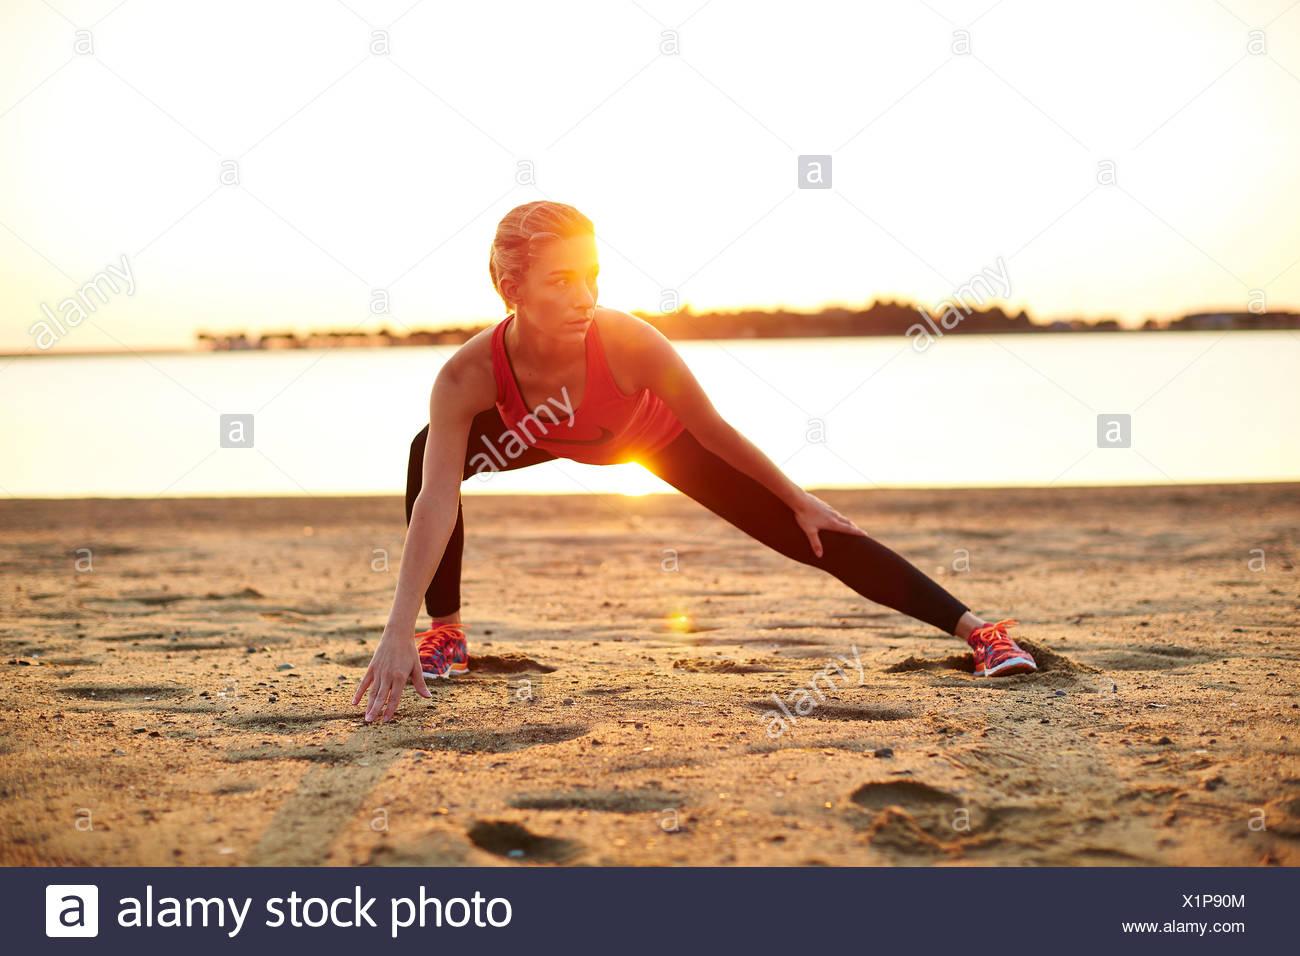 A young athletic woman working out outdoors. - Stock Image